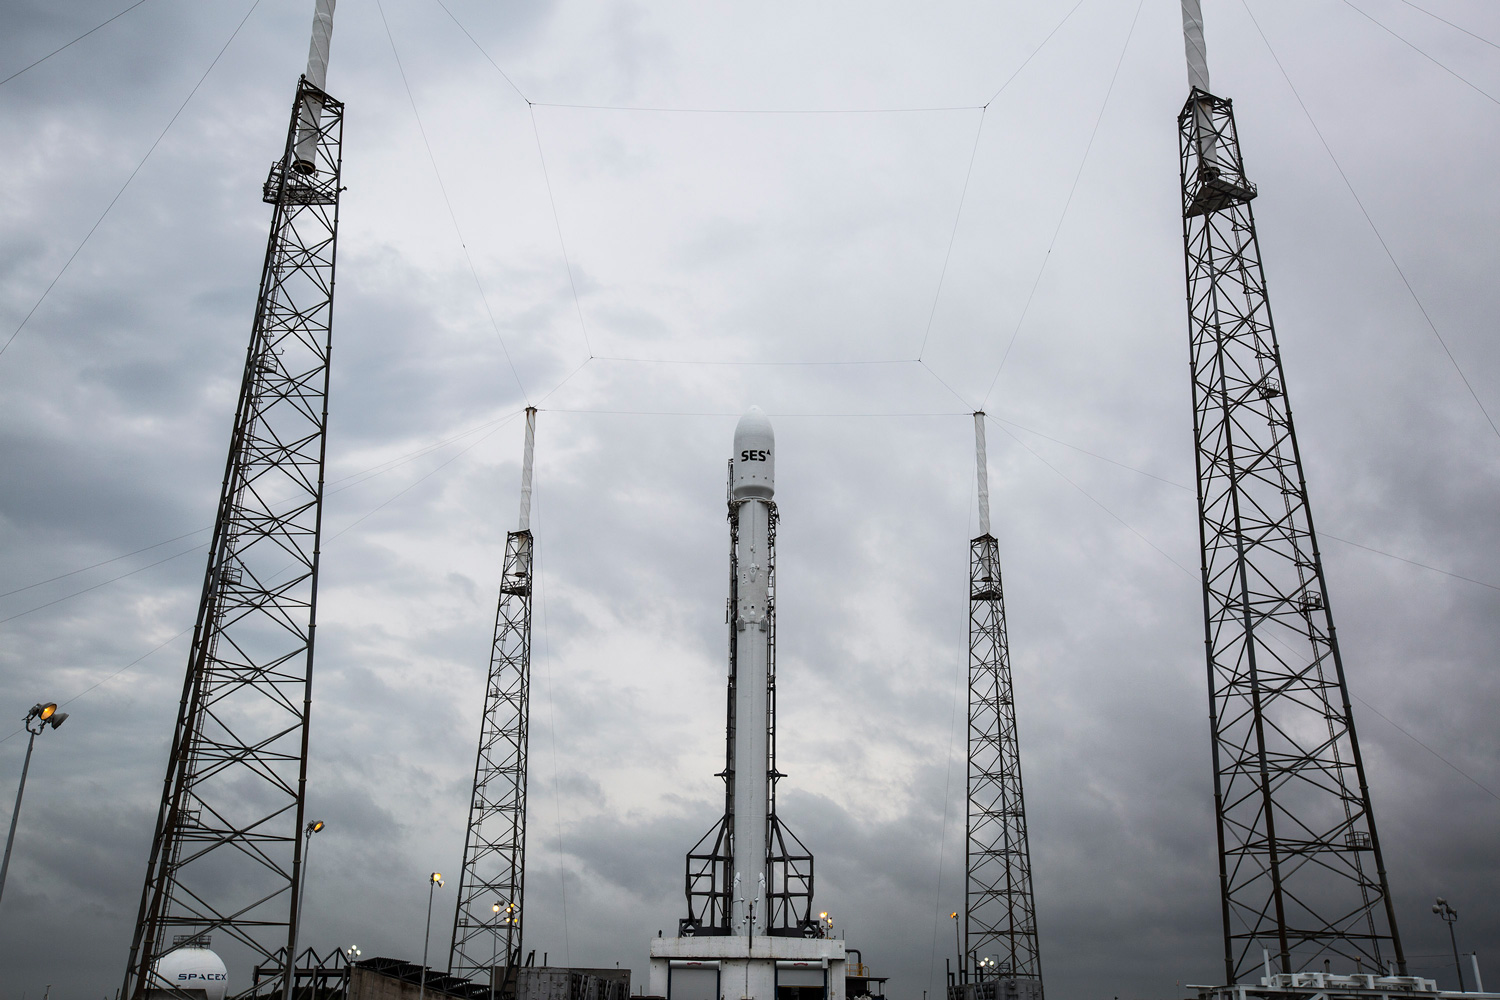 SpaceX targeting a November launch for its Falcon 9 rocket